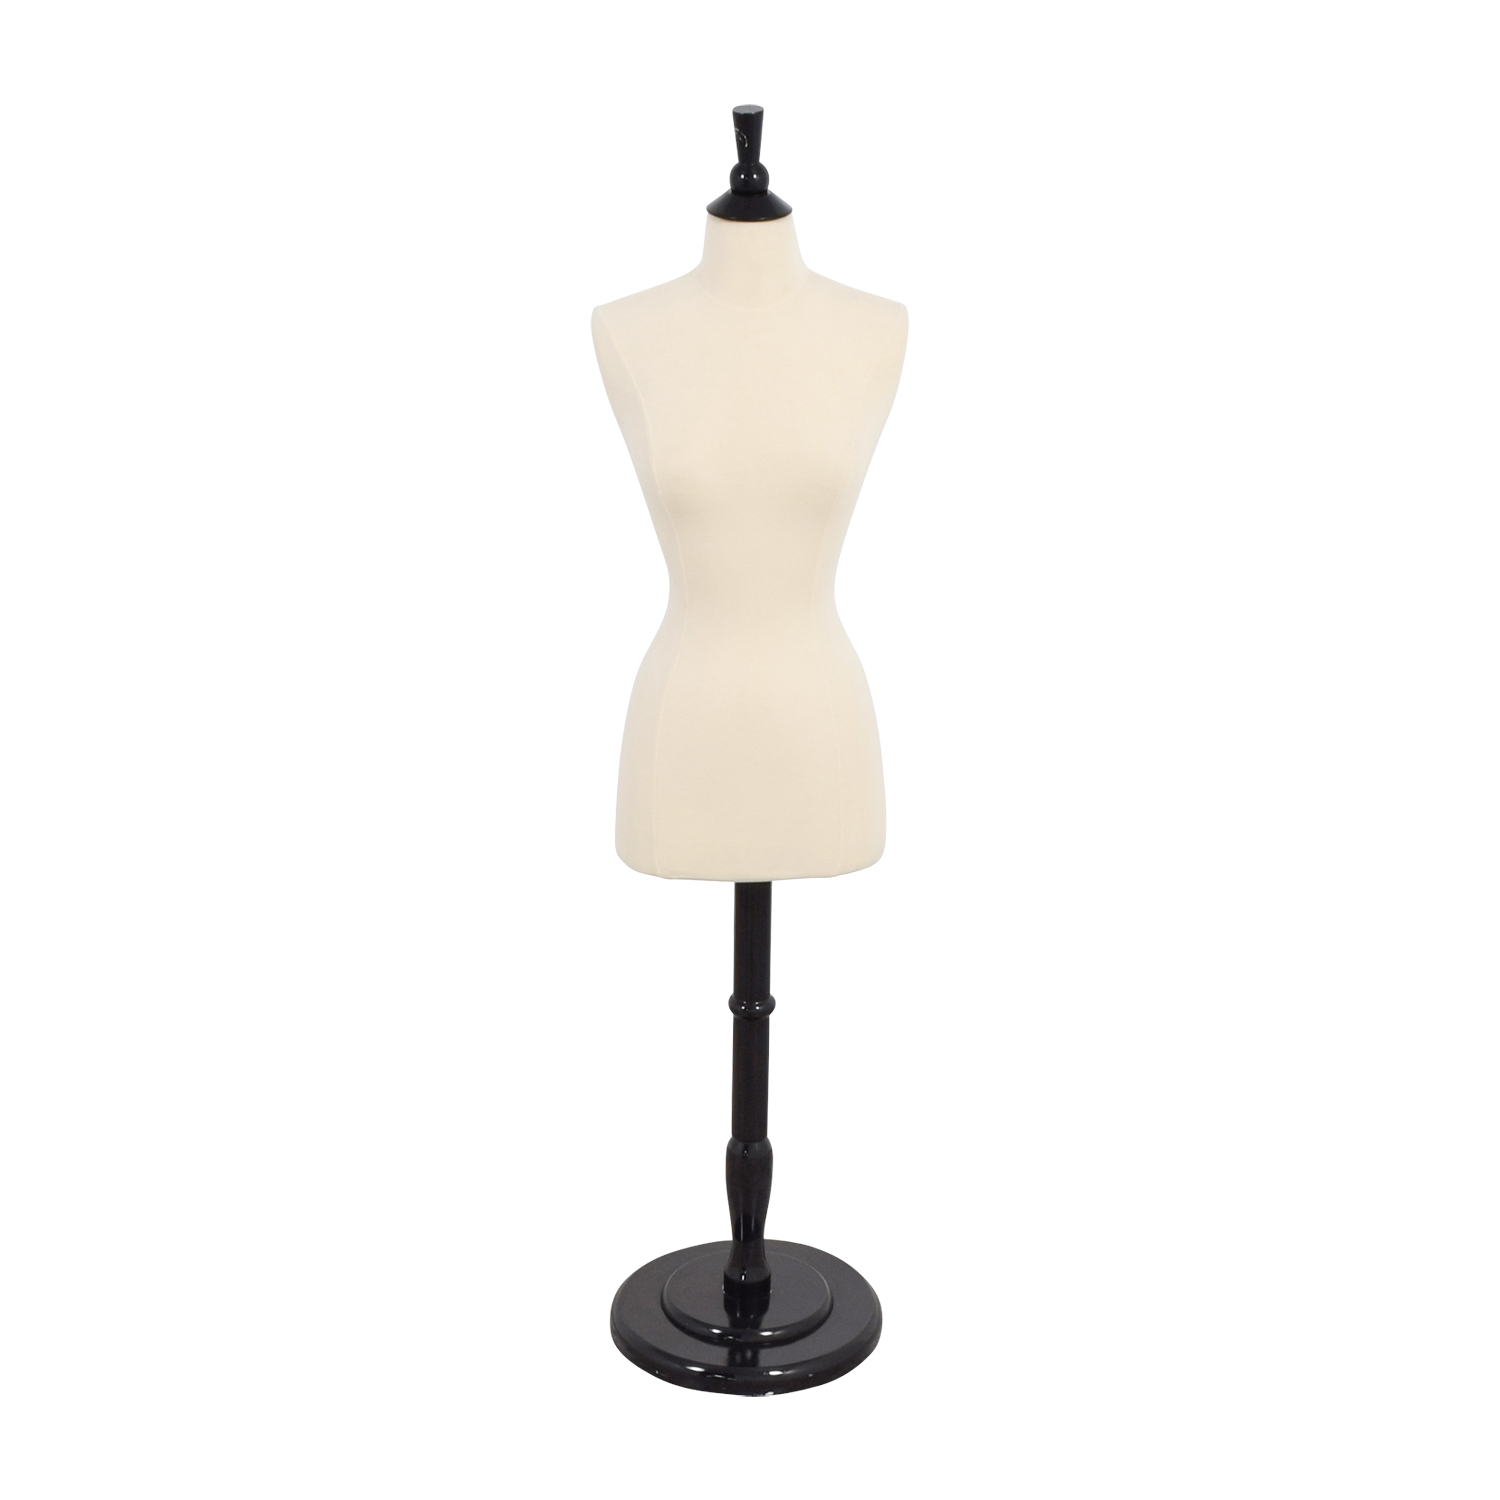 Dressform White and Black Mannequin dimensions